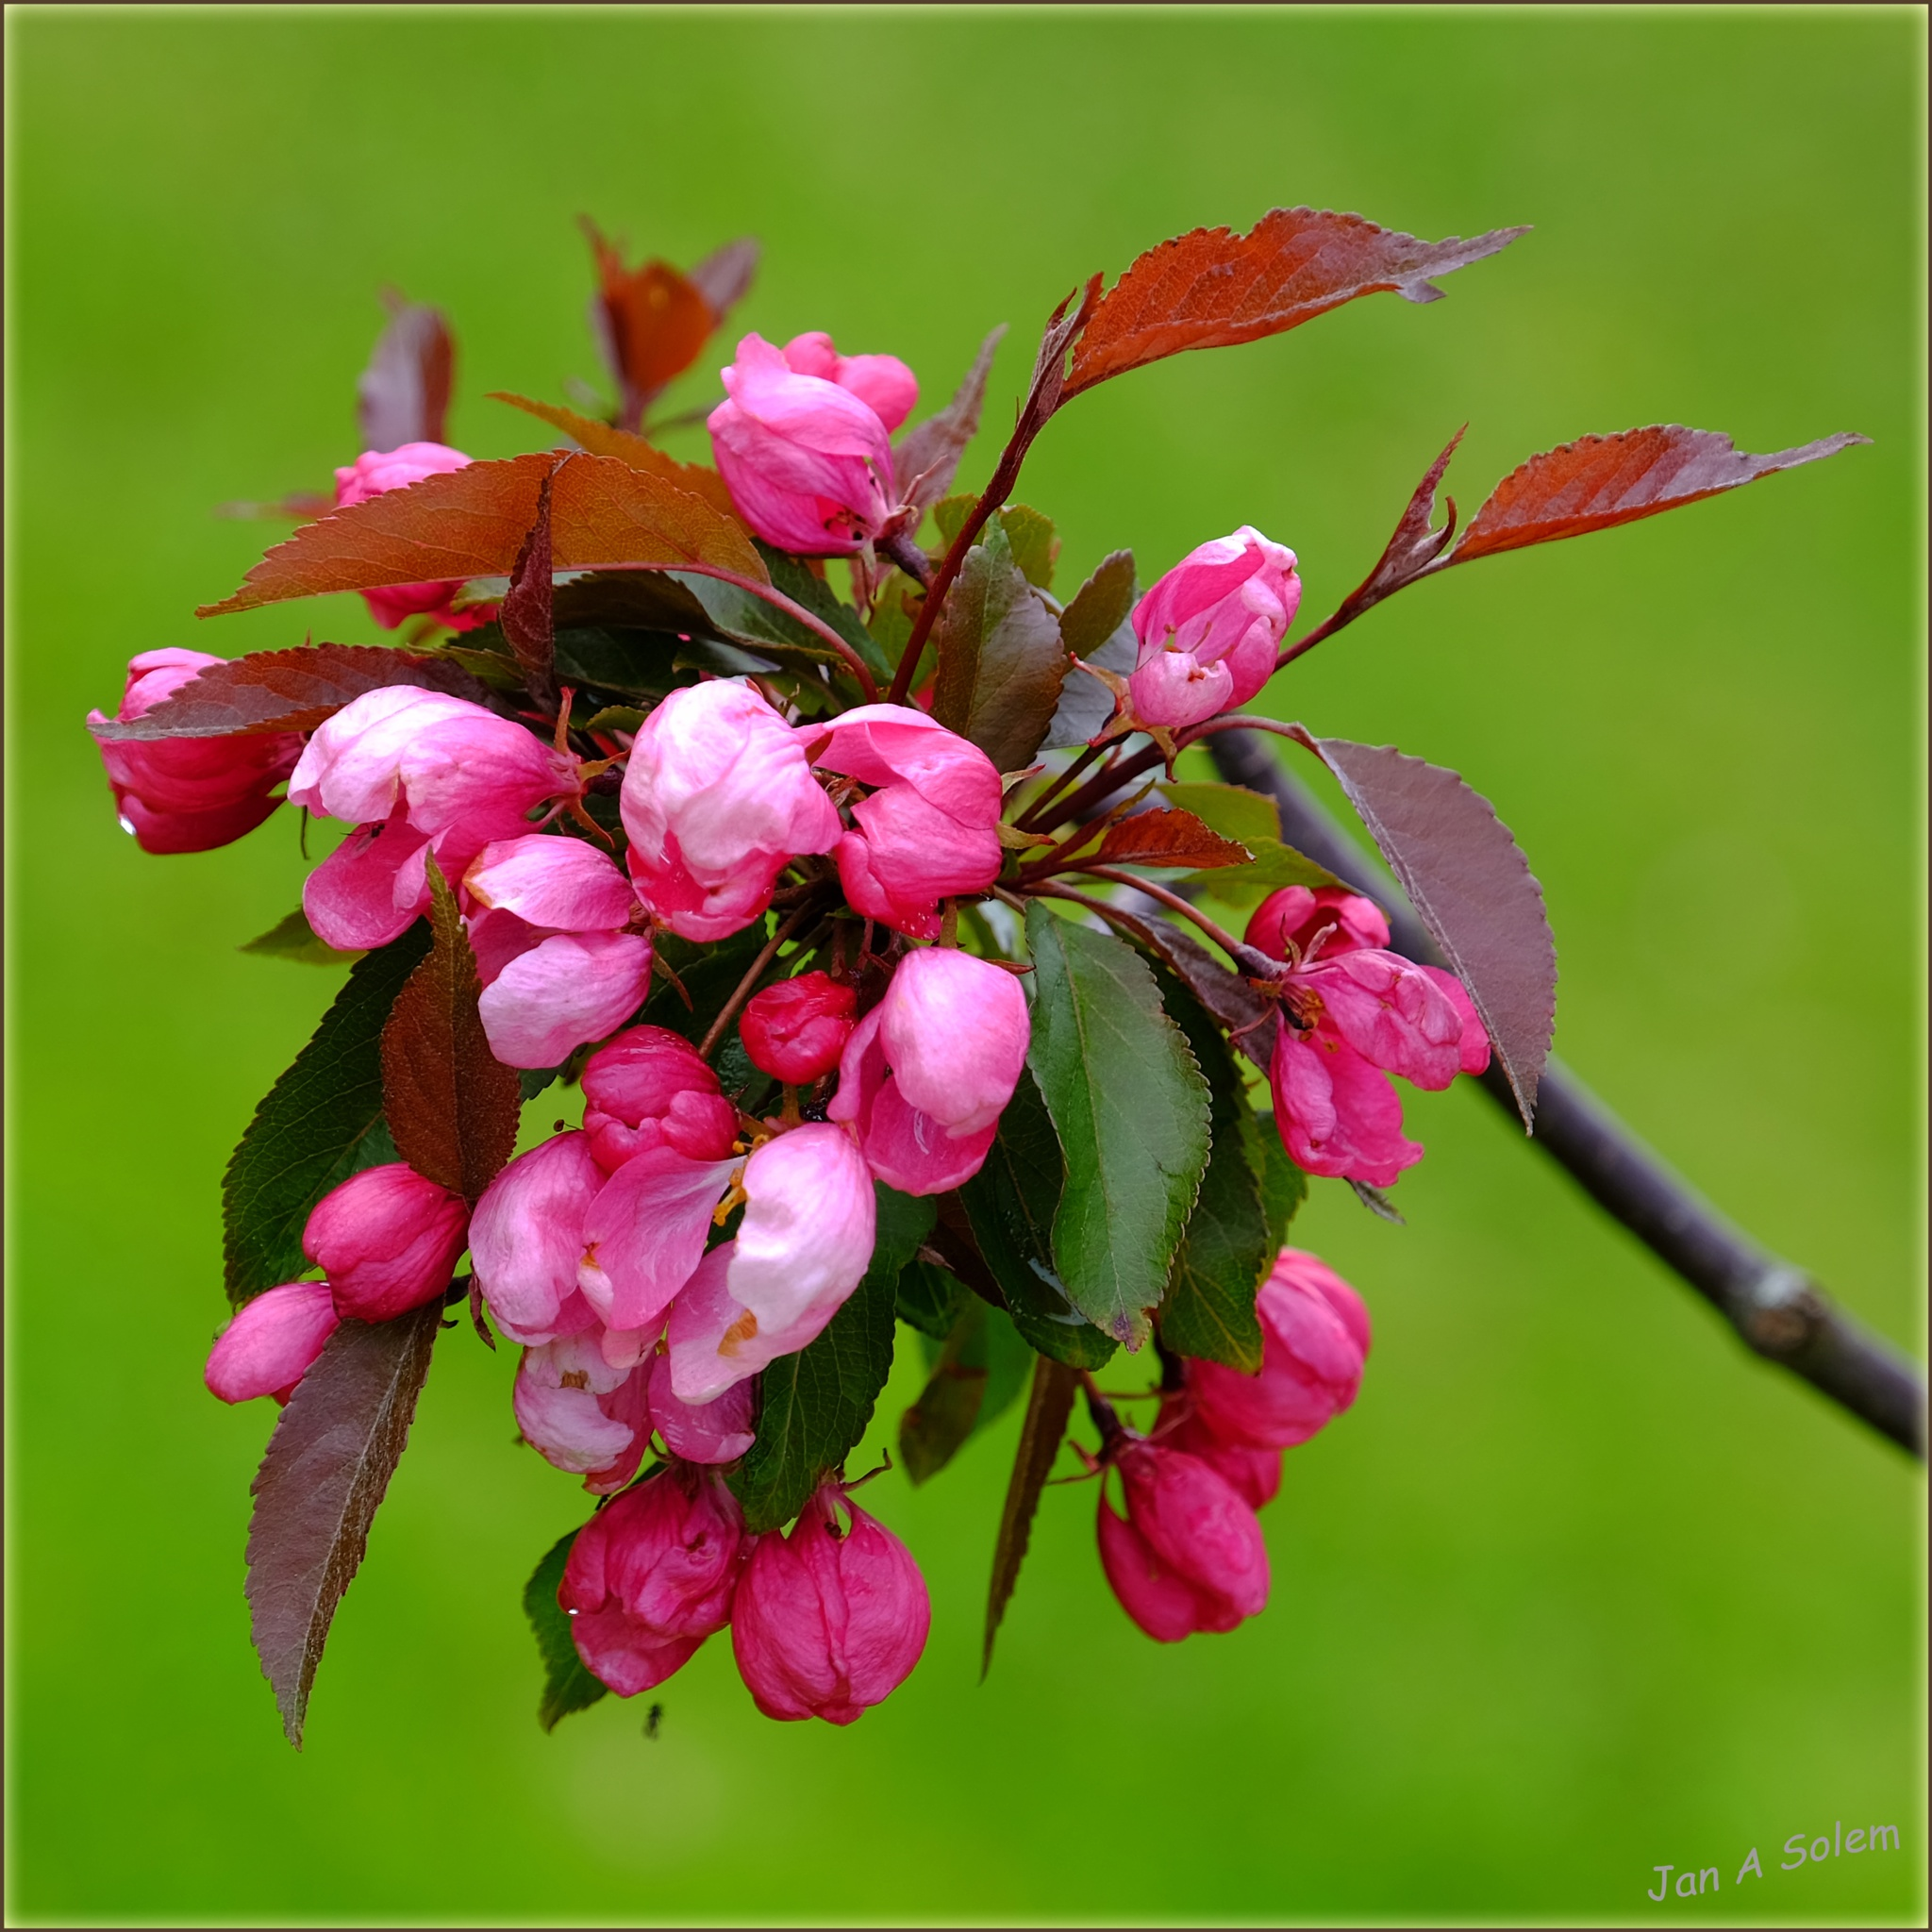 Flowering crab apple tree by Jan Arvid Solem